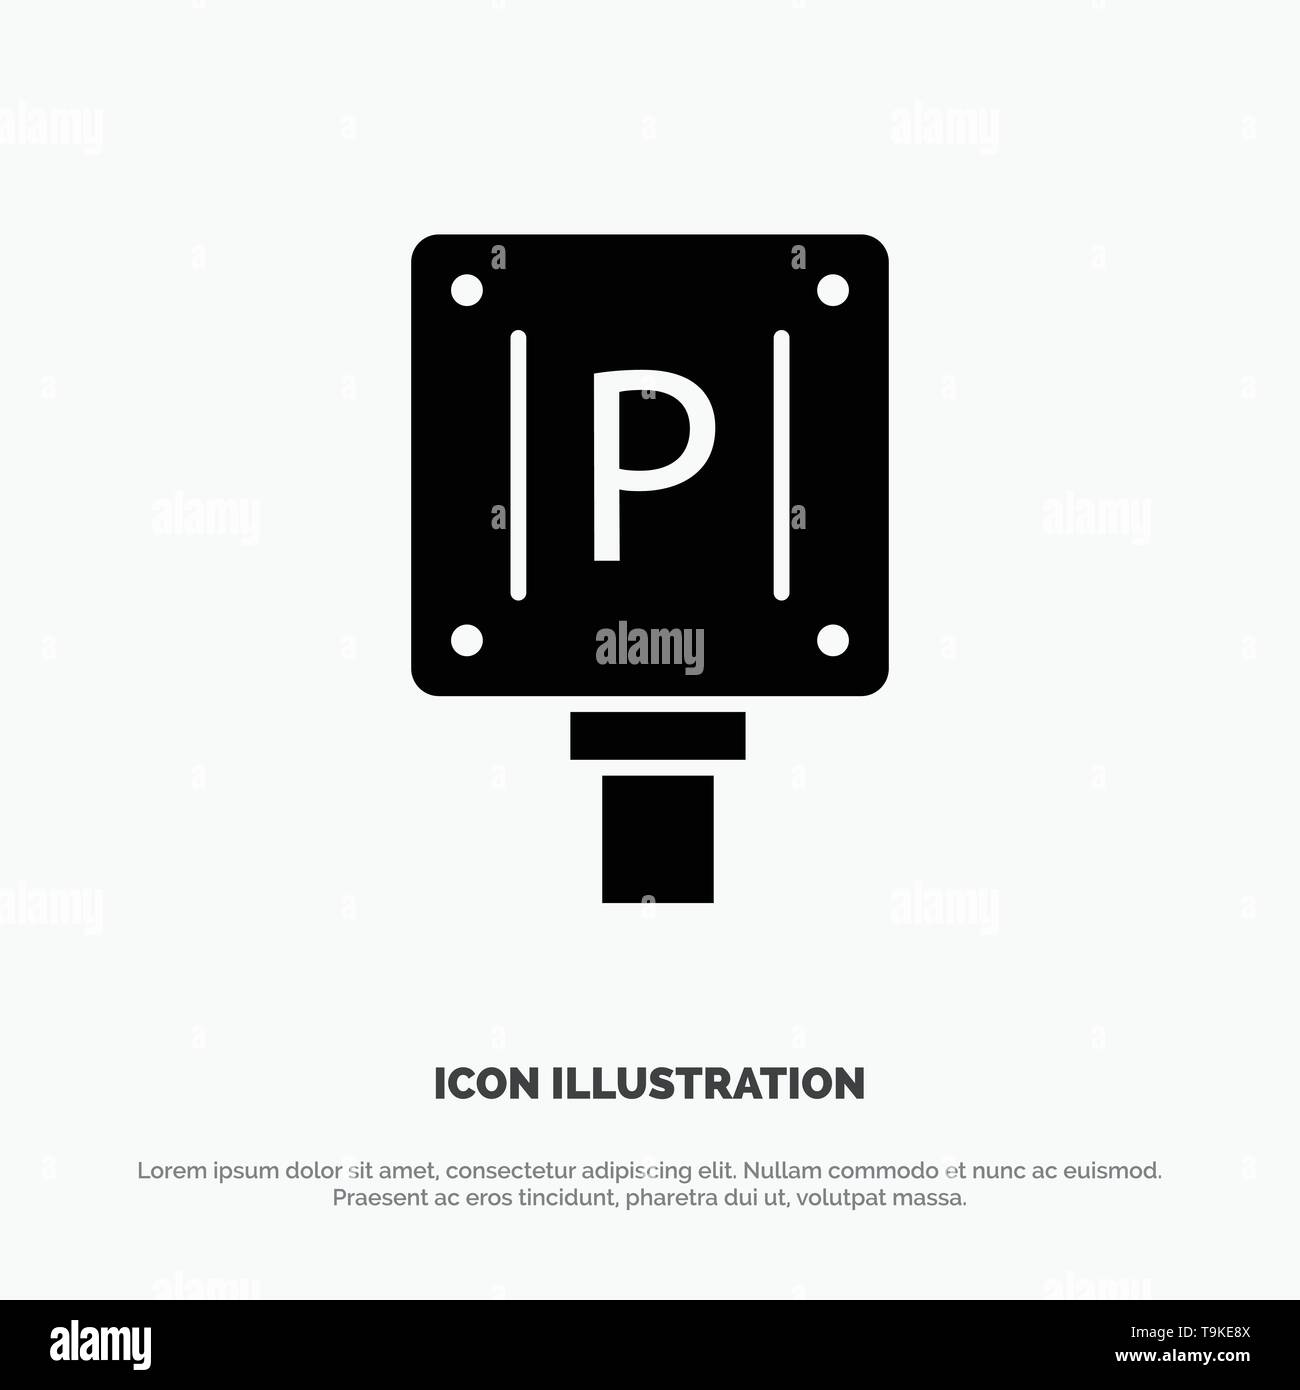 Parking, Board, Sign, Hotel Solid Black Glyph Icon - Stock Image